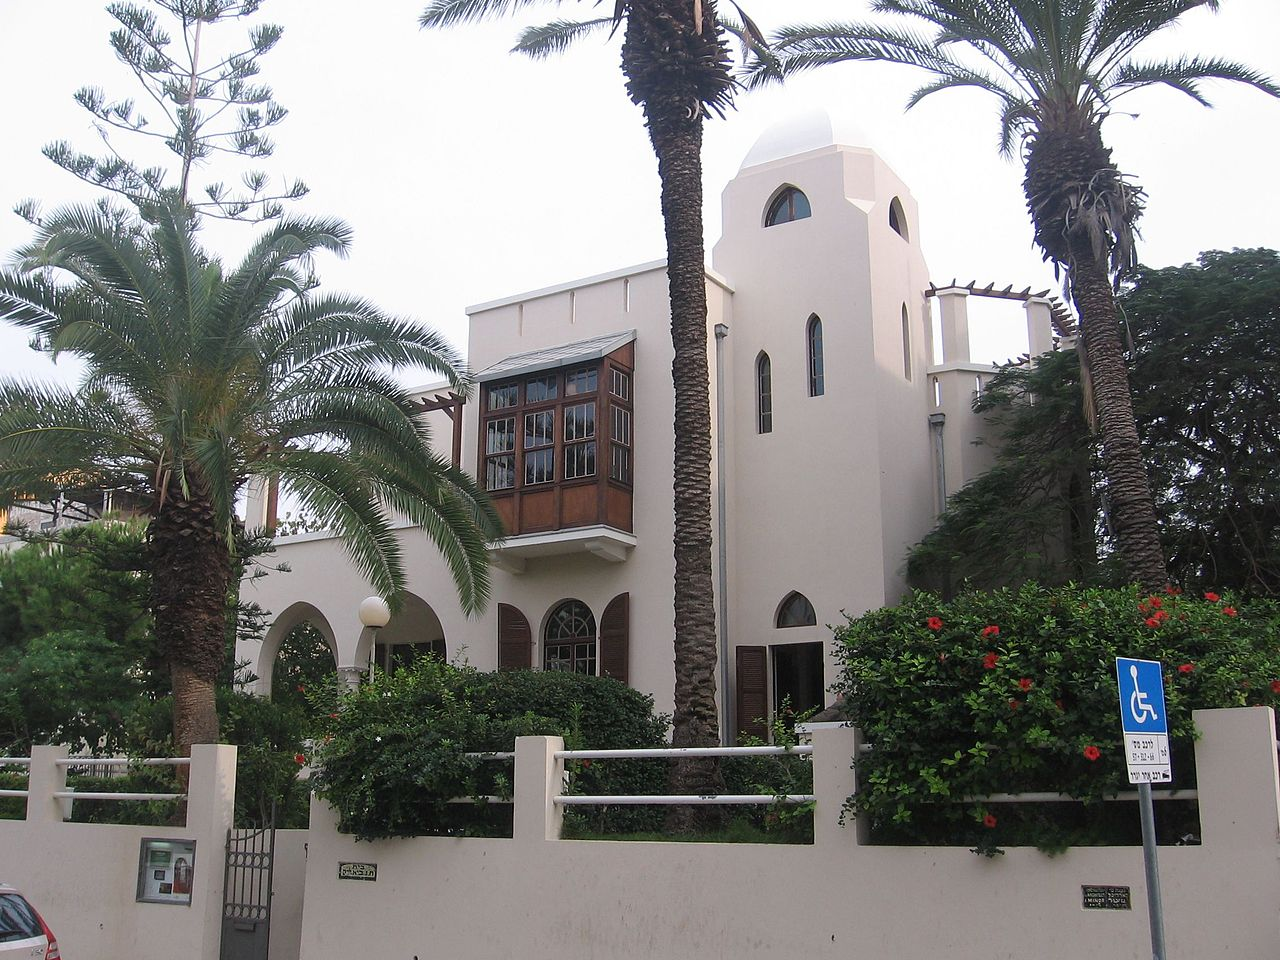 The Bialik House was poet Hayyim Nachman Bialik's home from 1925 to 1933. Gellerj, Creative Commons